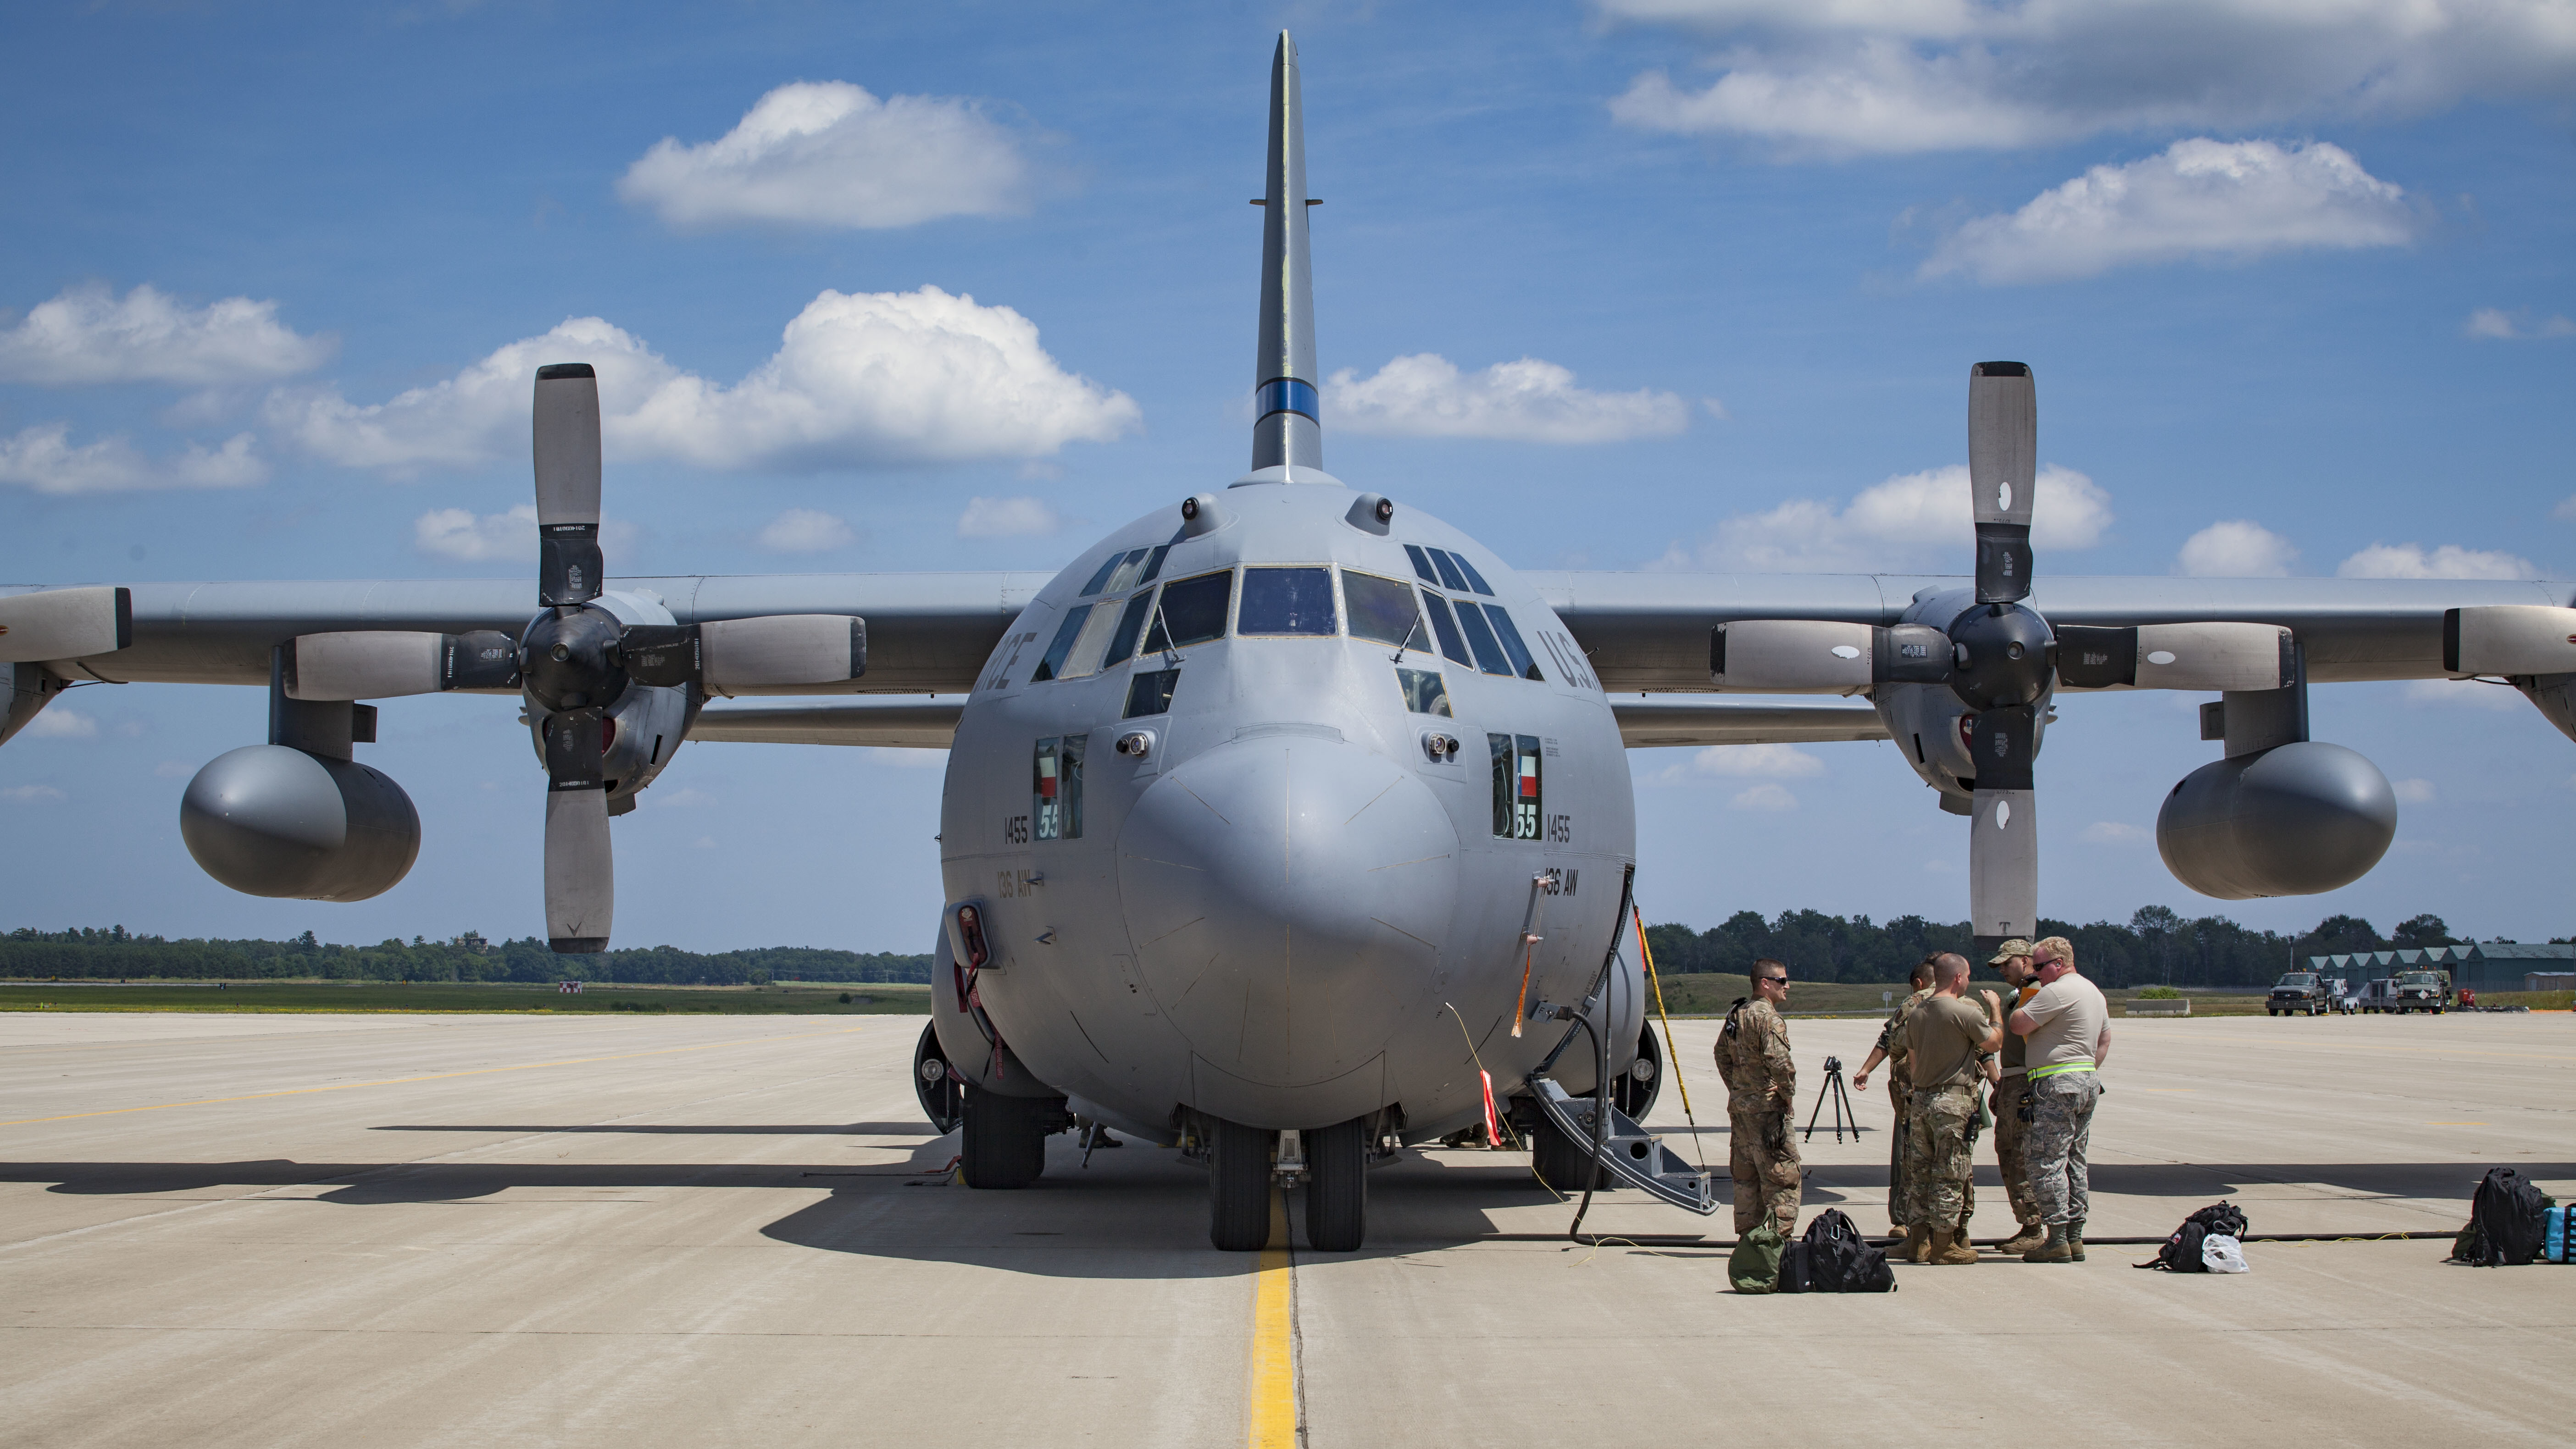 A C130 with the 136th Air Lift Wing, Texas Air National Guard, sit on the flight line as personnel depart at Volk Field Air National Guard Base during PATRIOT North 19 on July 12, 2019 in Camp Douglas, Wis. (Master Sgt. Kellen Kroening/U.S. Air National Guard)